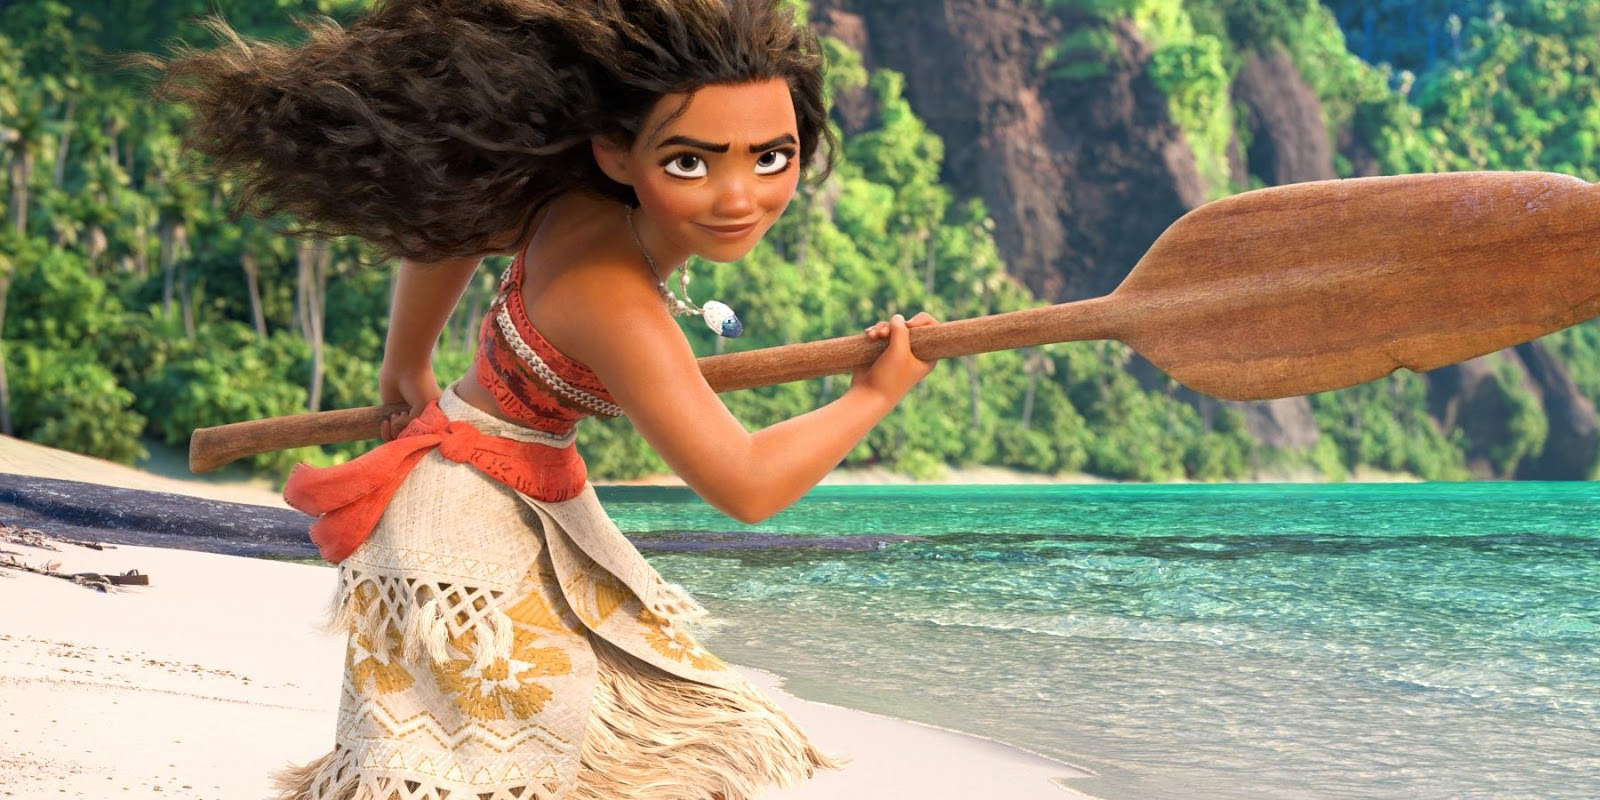 Hey, Hollywood, the Moana Song Rejects Central Planning